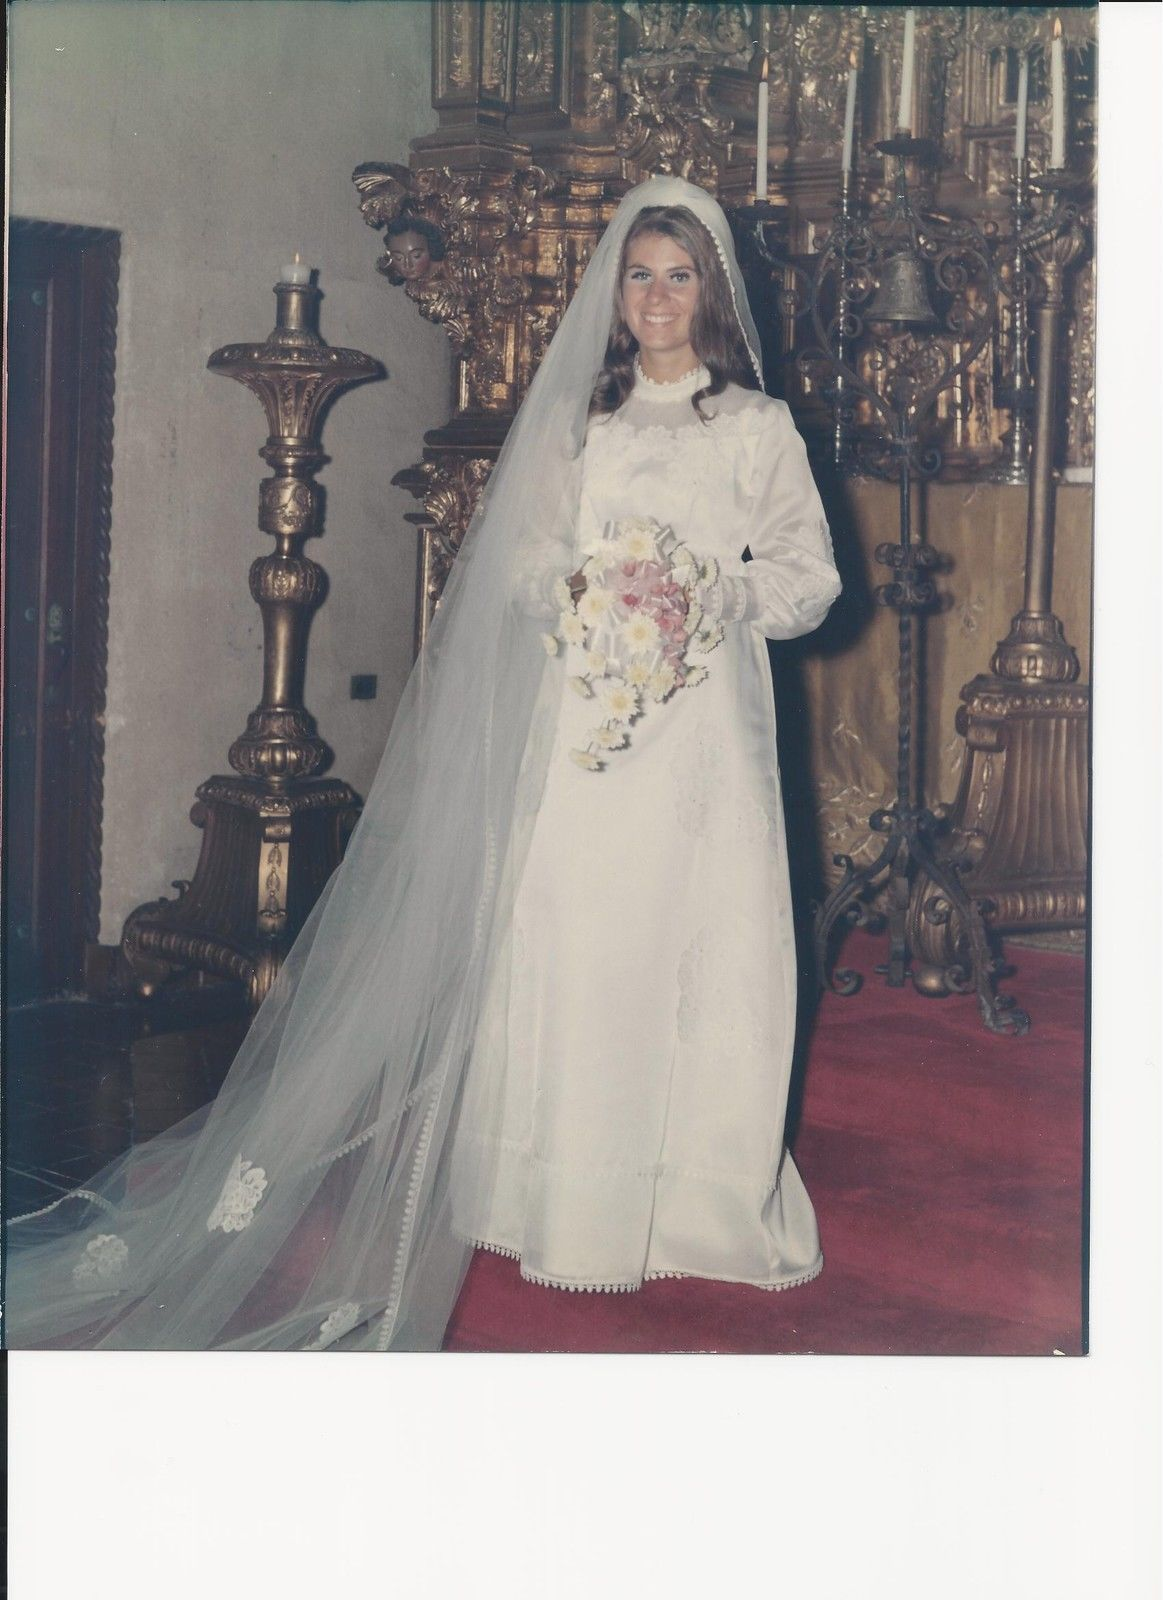 1970 Wedding Dress with Veil Absoultely Beautiful and